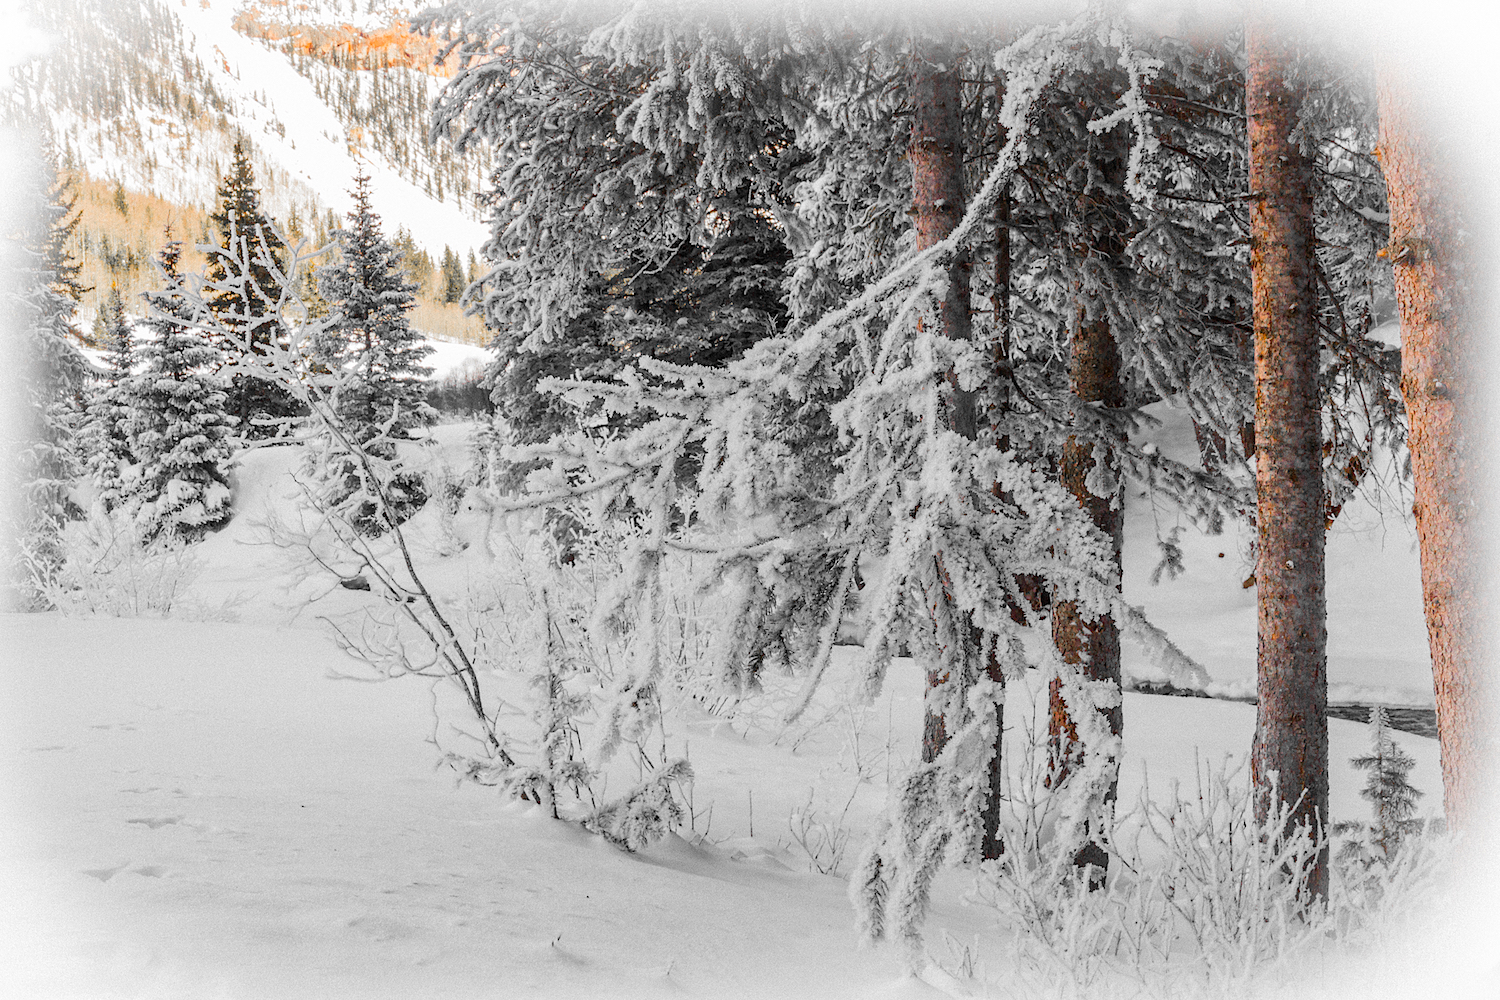 South Mineral Snowshoe, Image # 3099